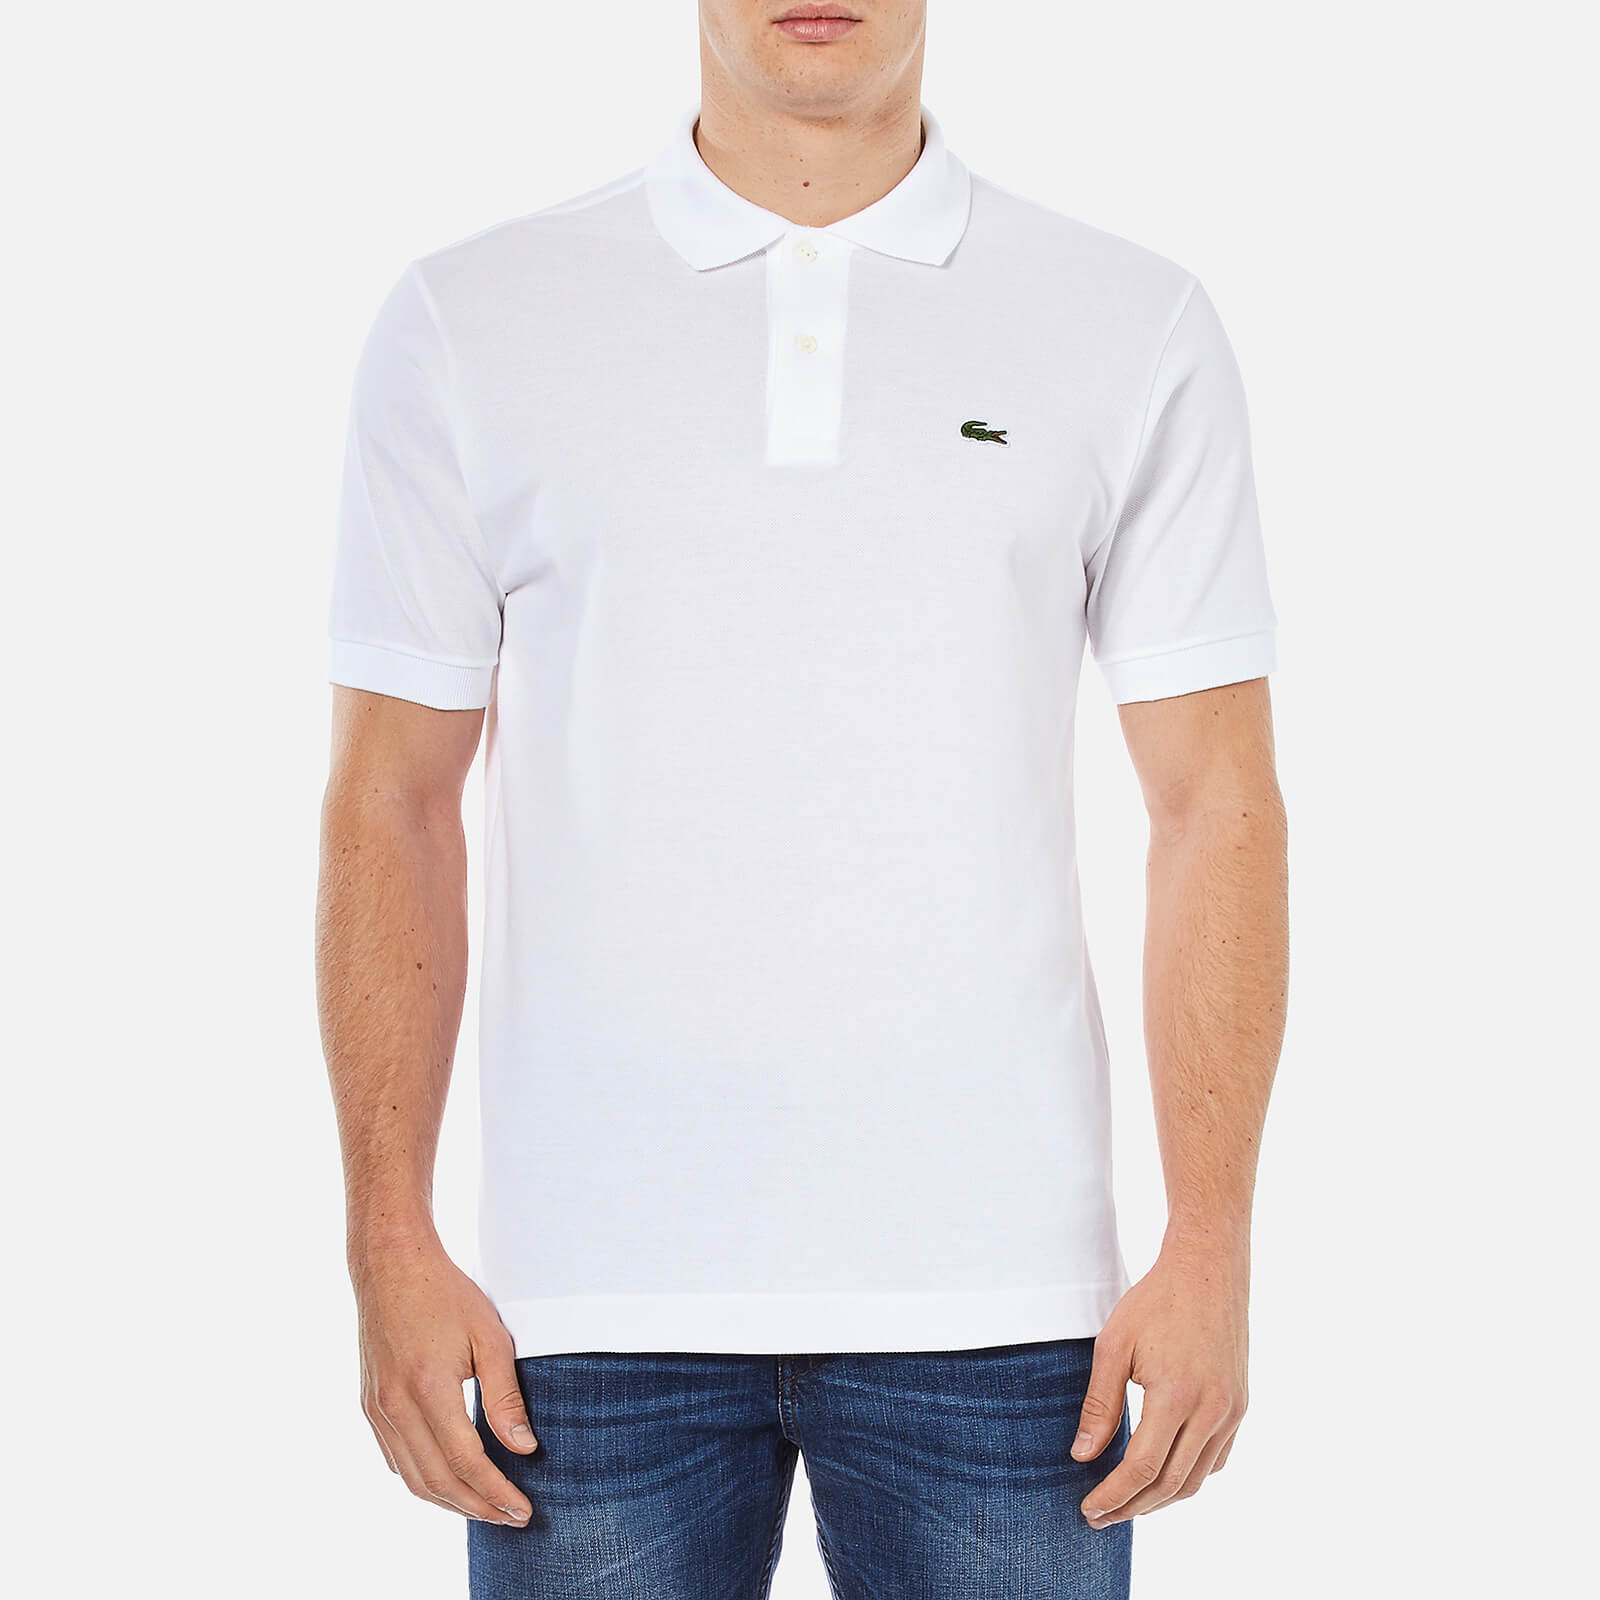 141a24edb Lacoste Men s Classic Fit Pique Polo Shirt - White - Free UK Delivery over  £50